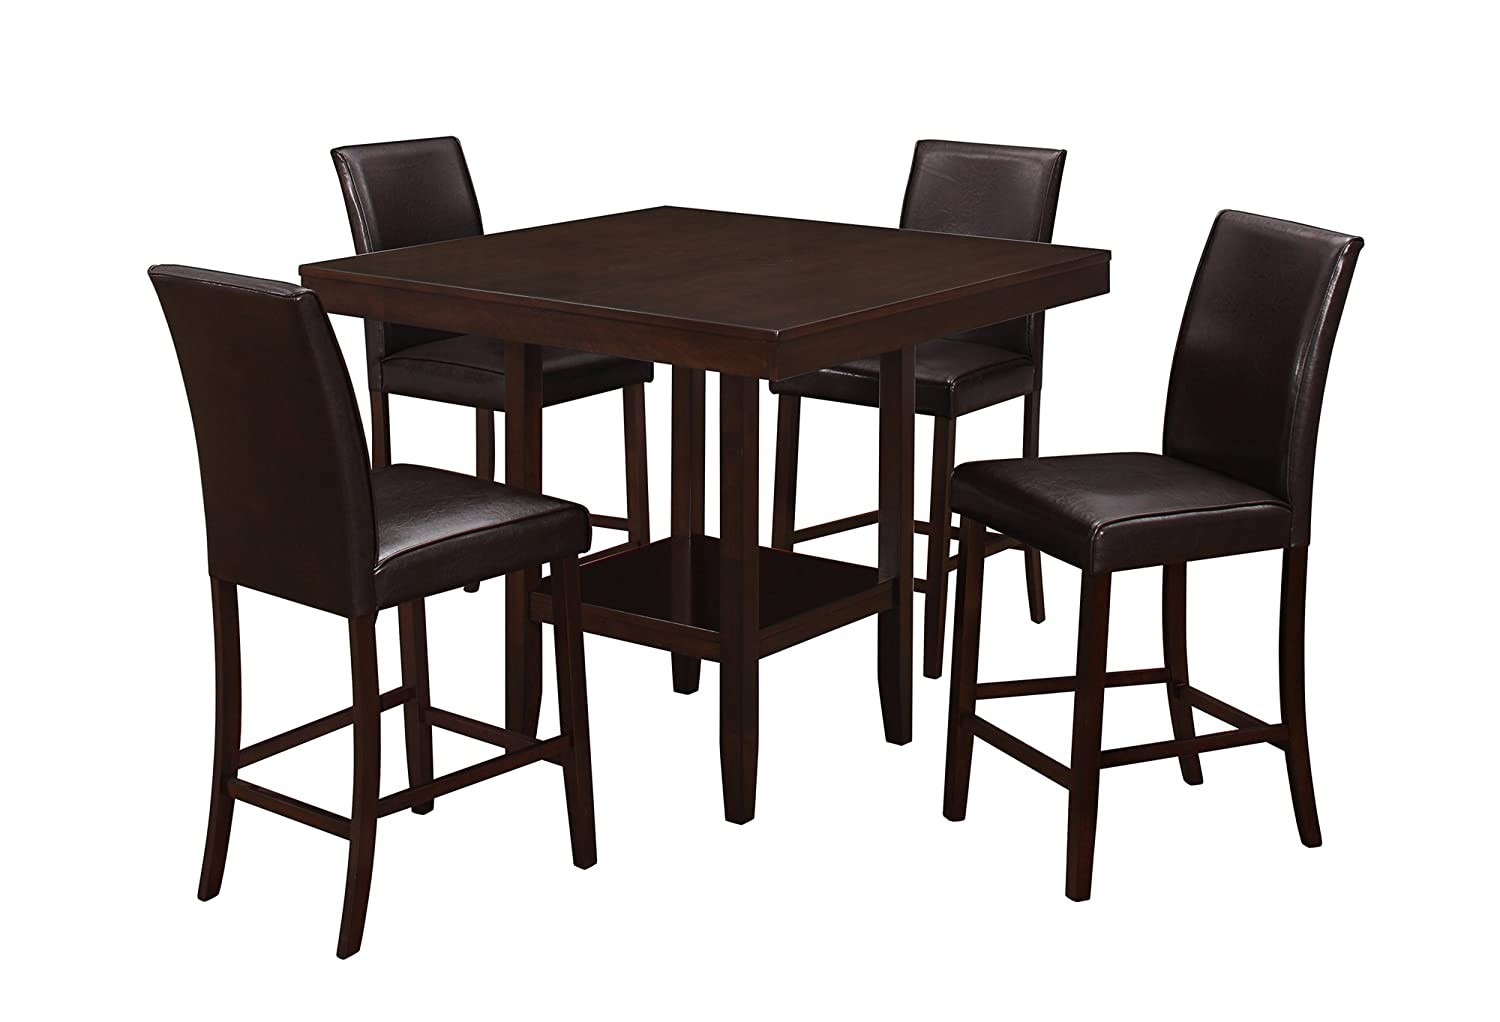 30 X 48 Cappuccino Monarch Specialties I 1178 Dining Table